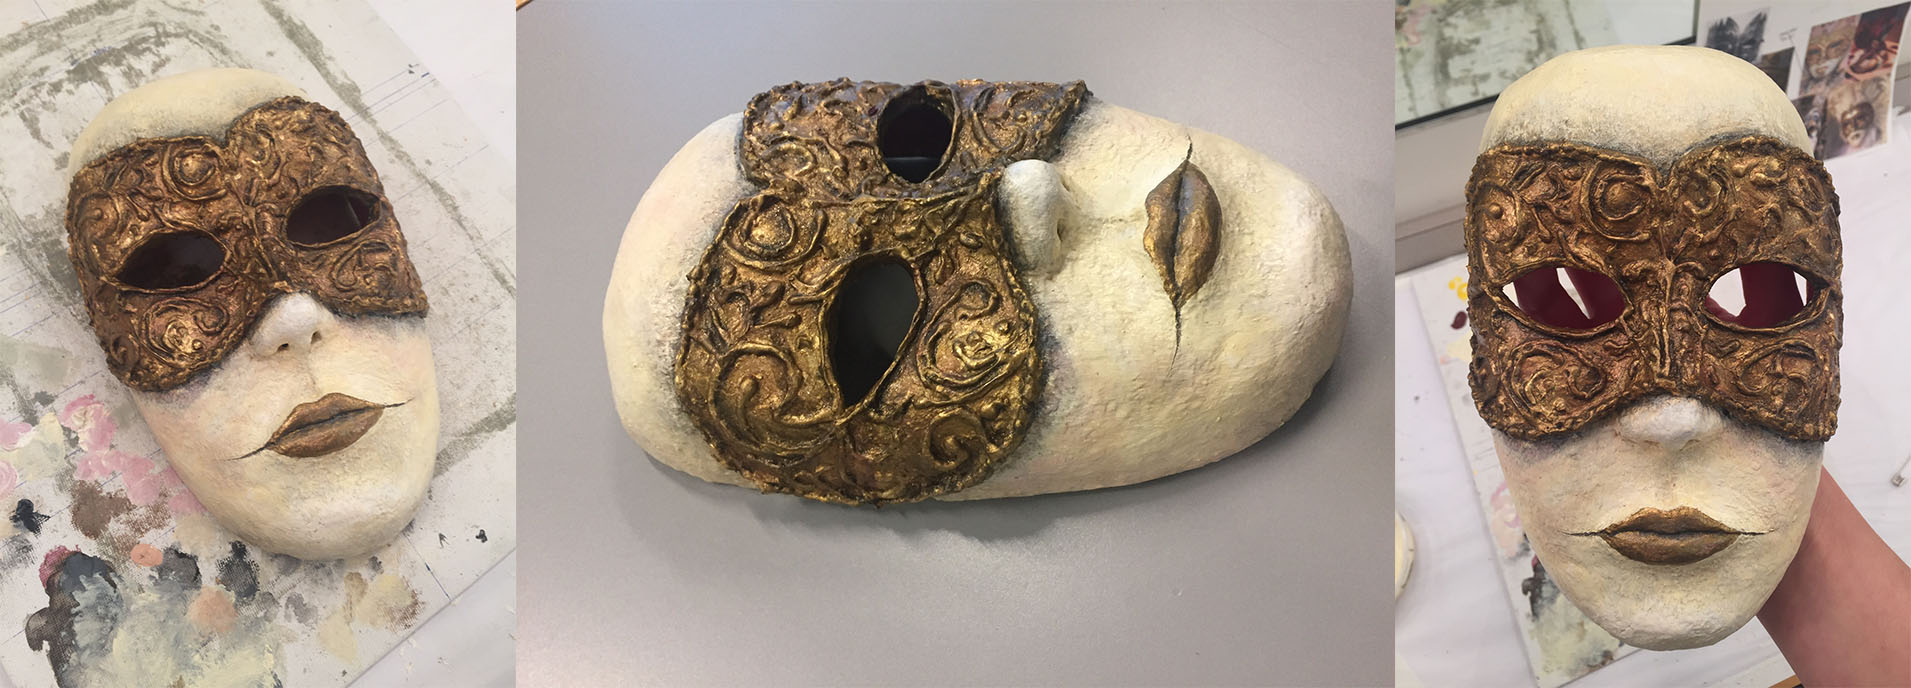 Paper mache mask making process part 2. painted with gold leaf and acrylic paint. Sealed with bee's wax and tar mixture.